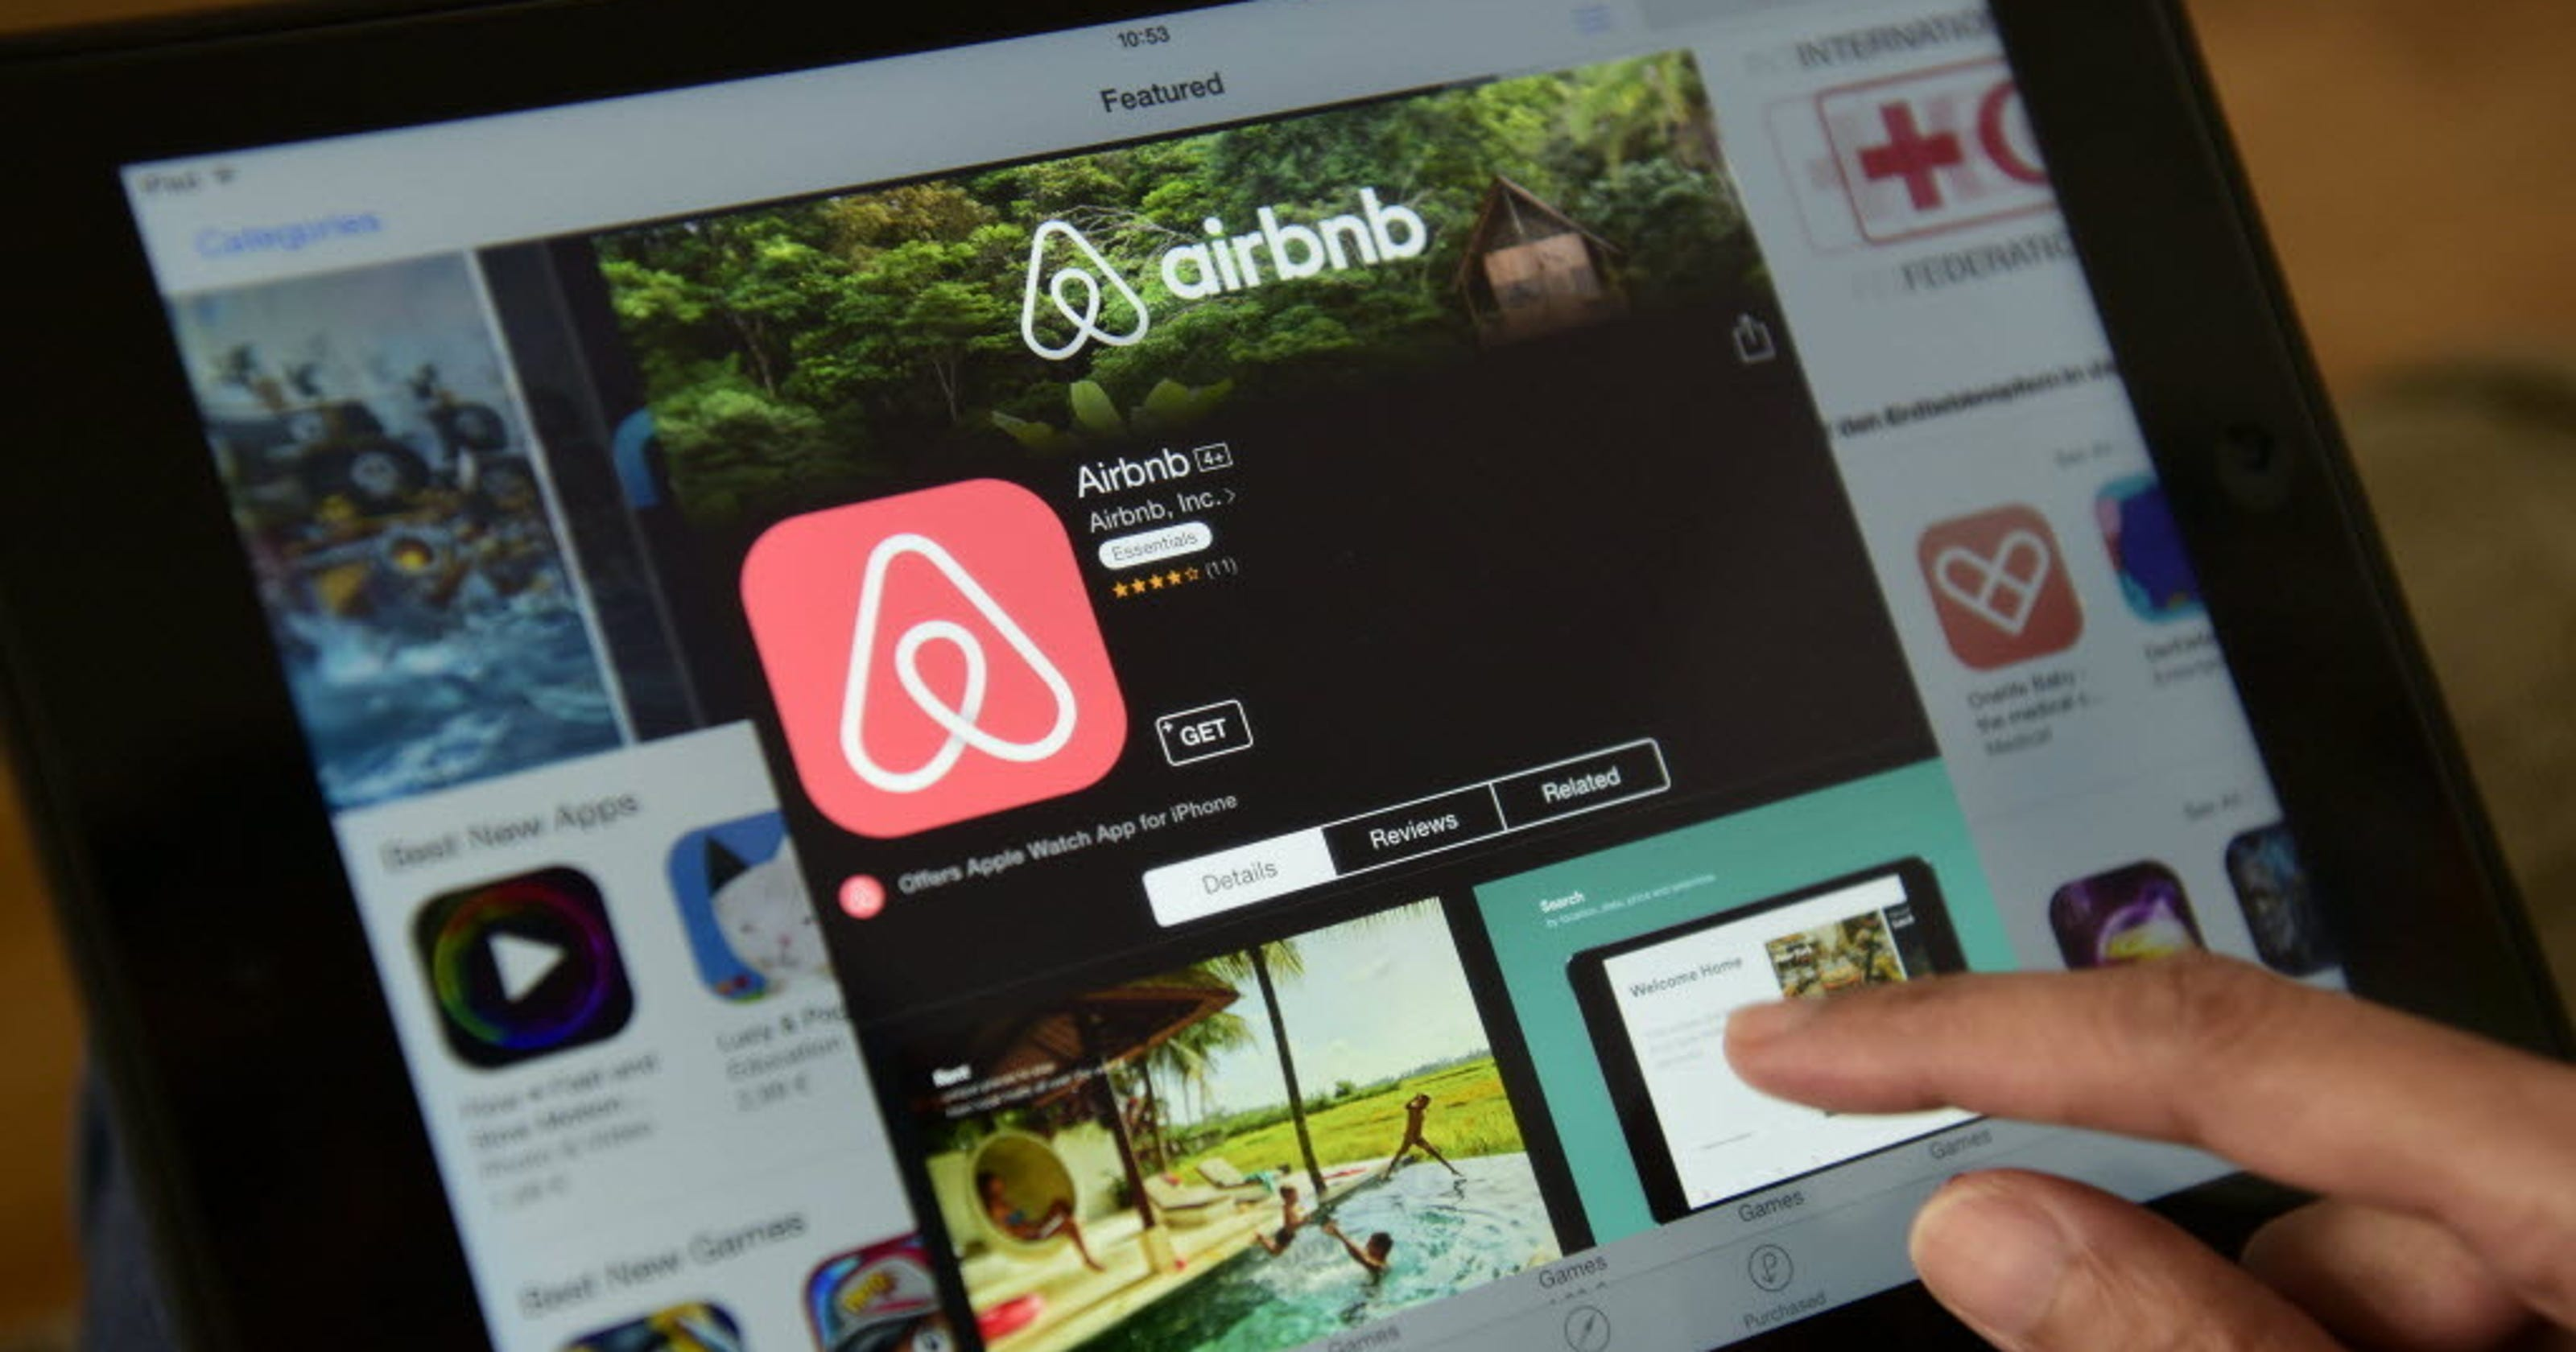 Airbnb bans host in SC after recording device found in home